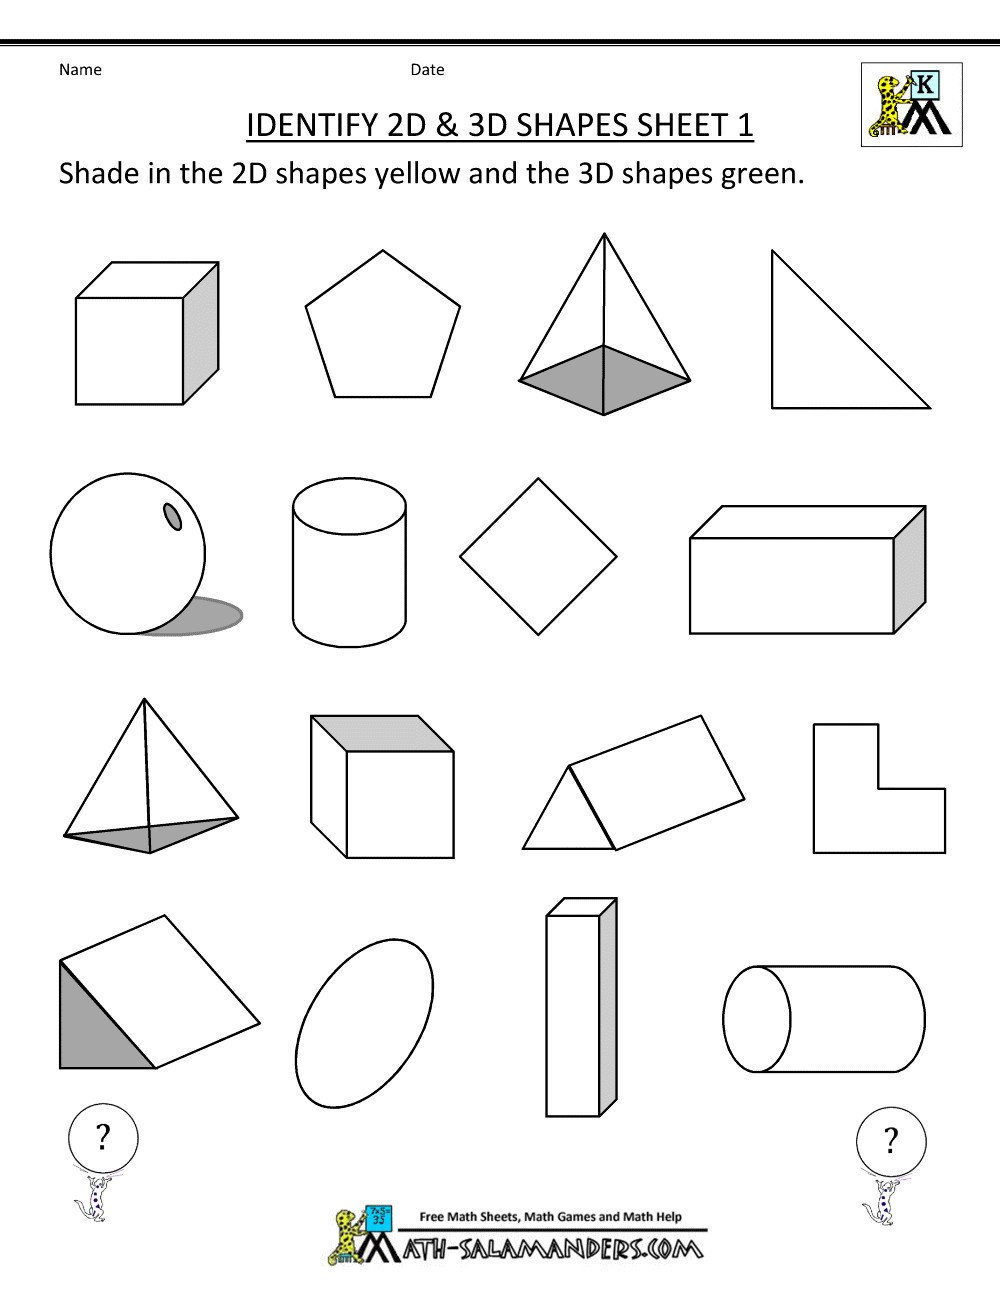 2nd grade math word problem worksheets free and printable k5 21